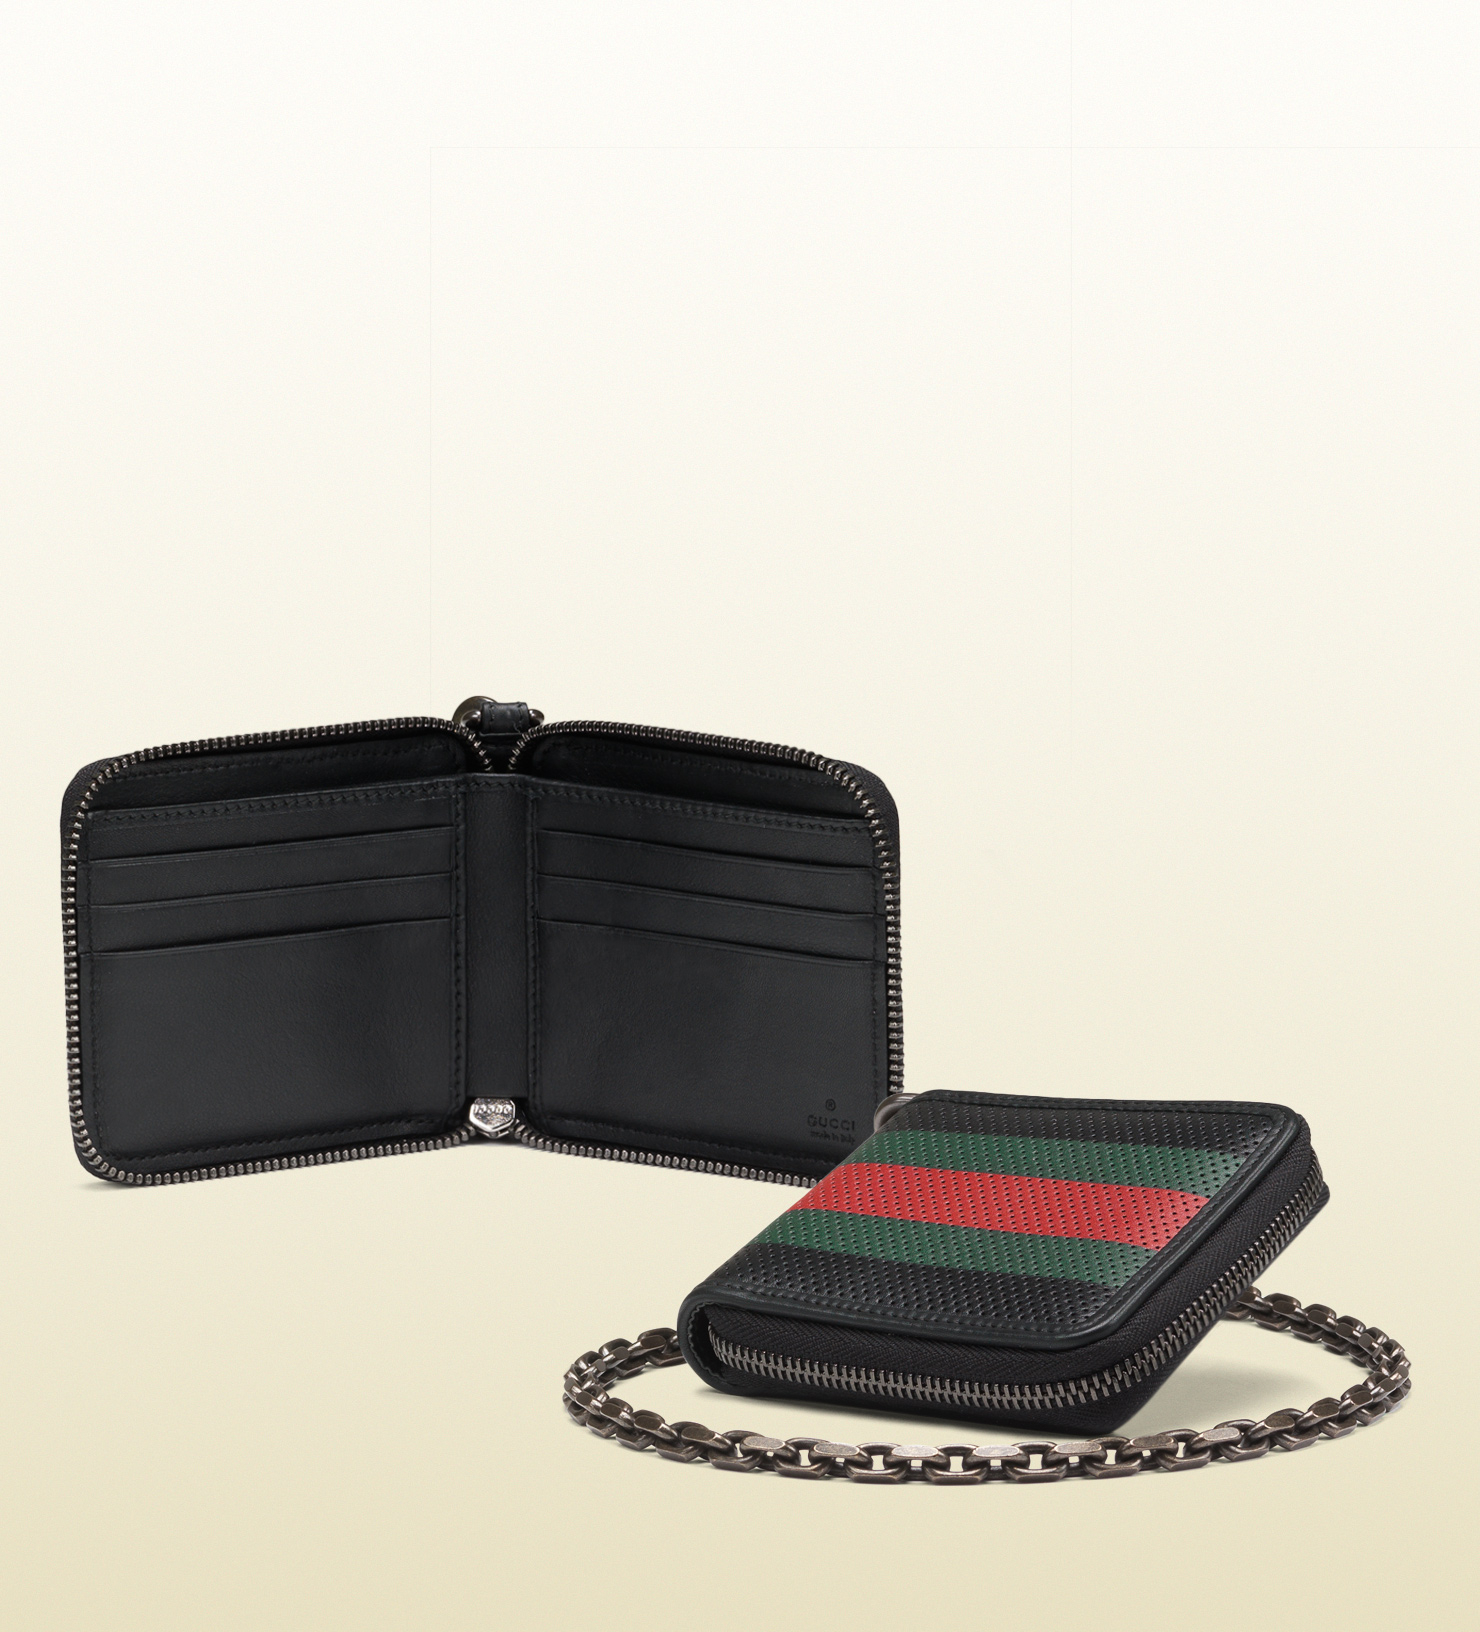 1006897a20c Gucci Perforated Leather Web Chain Wallet in Black for Men